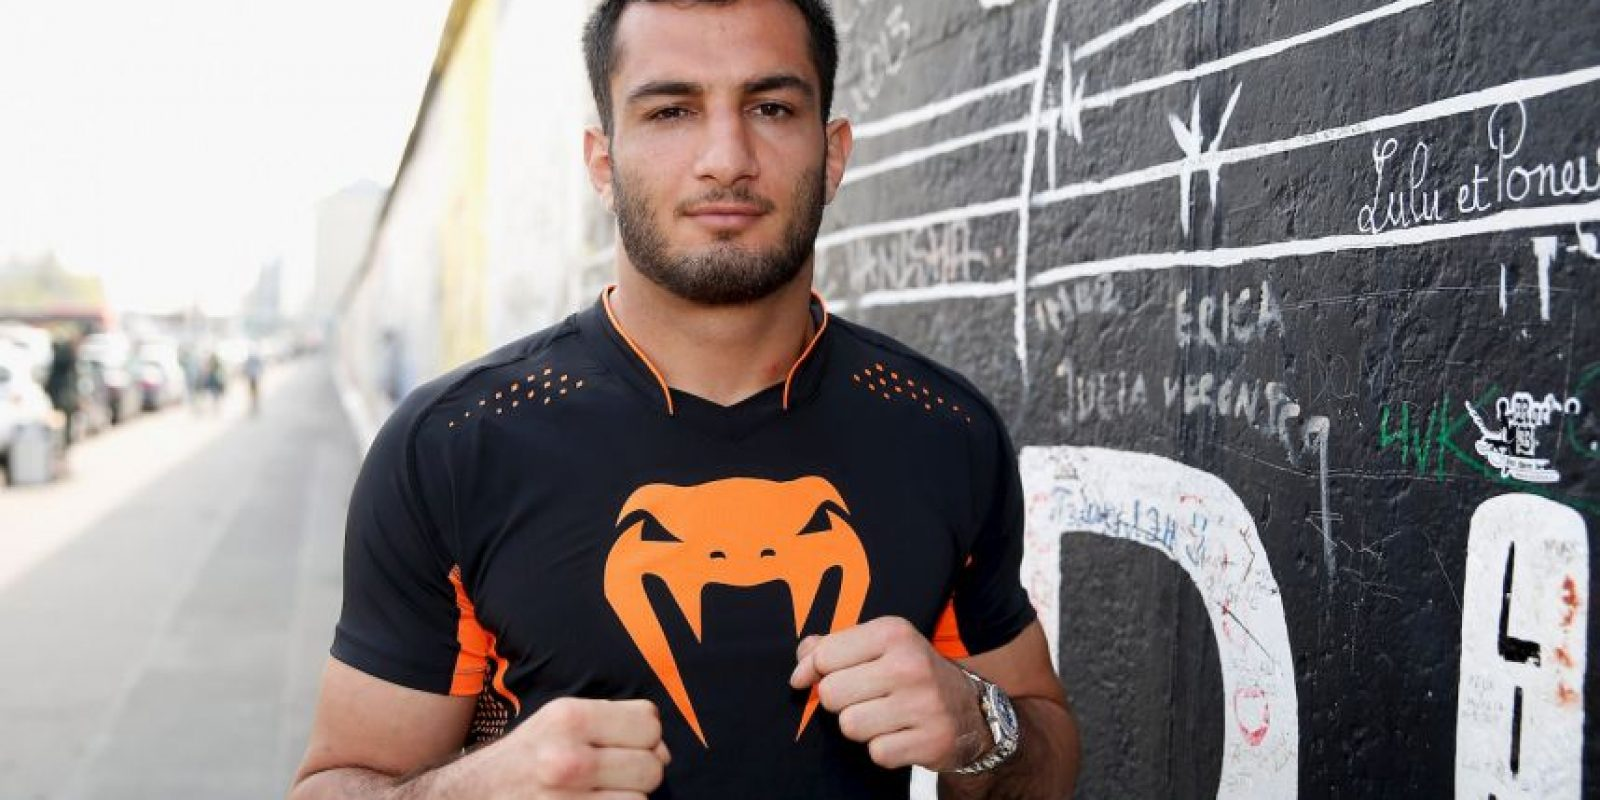 Gegard Mousasi Foto: Getty Images